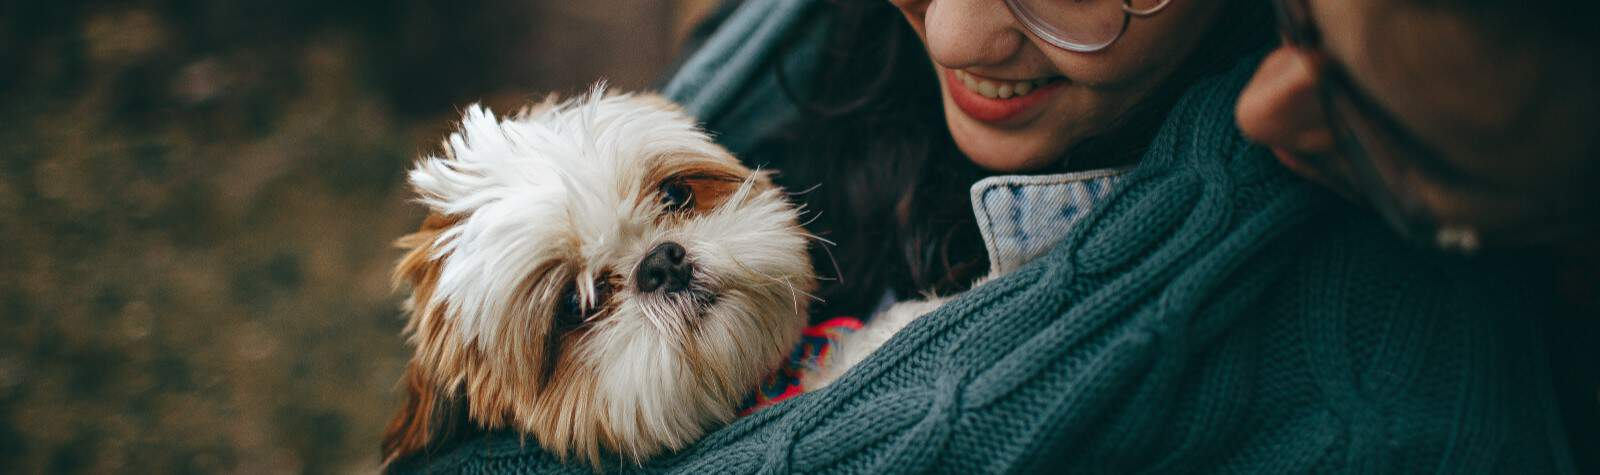 5 Proven Facts About Dogs That Make Them A Better Companion Than Your Partner